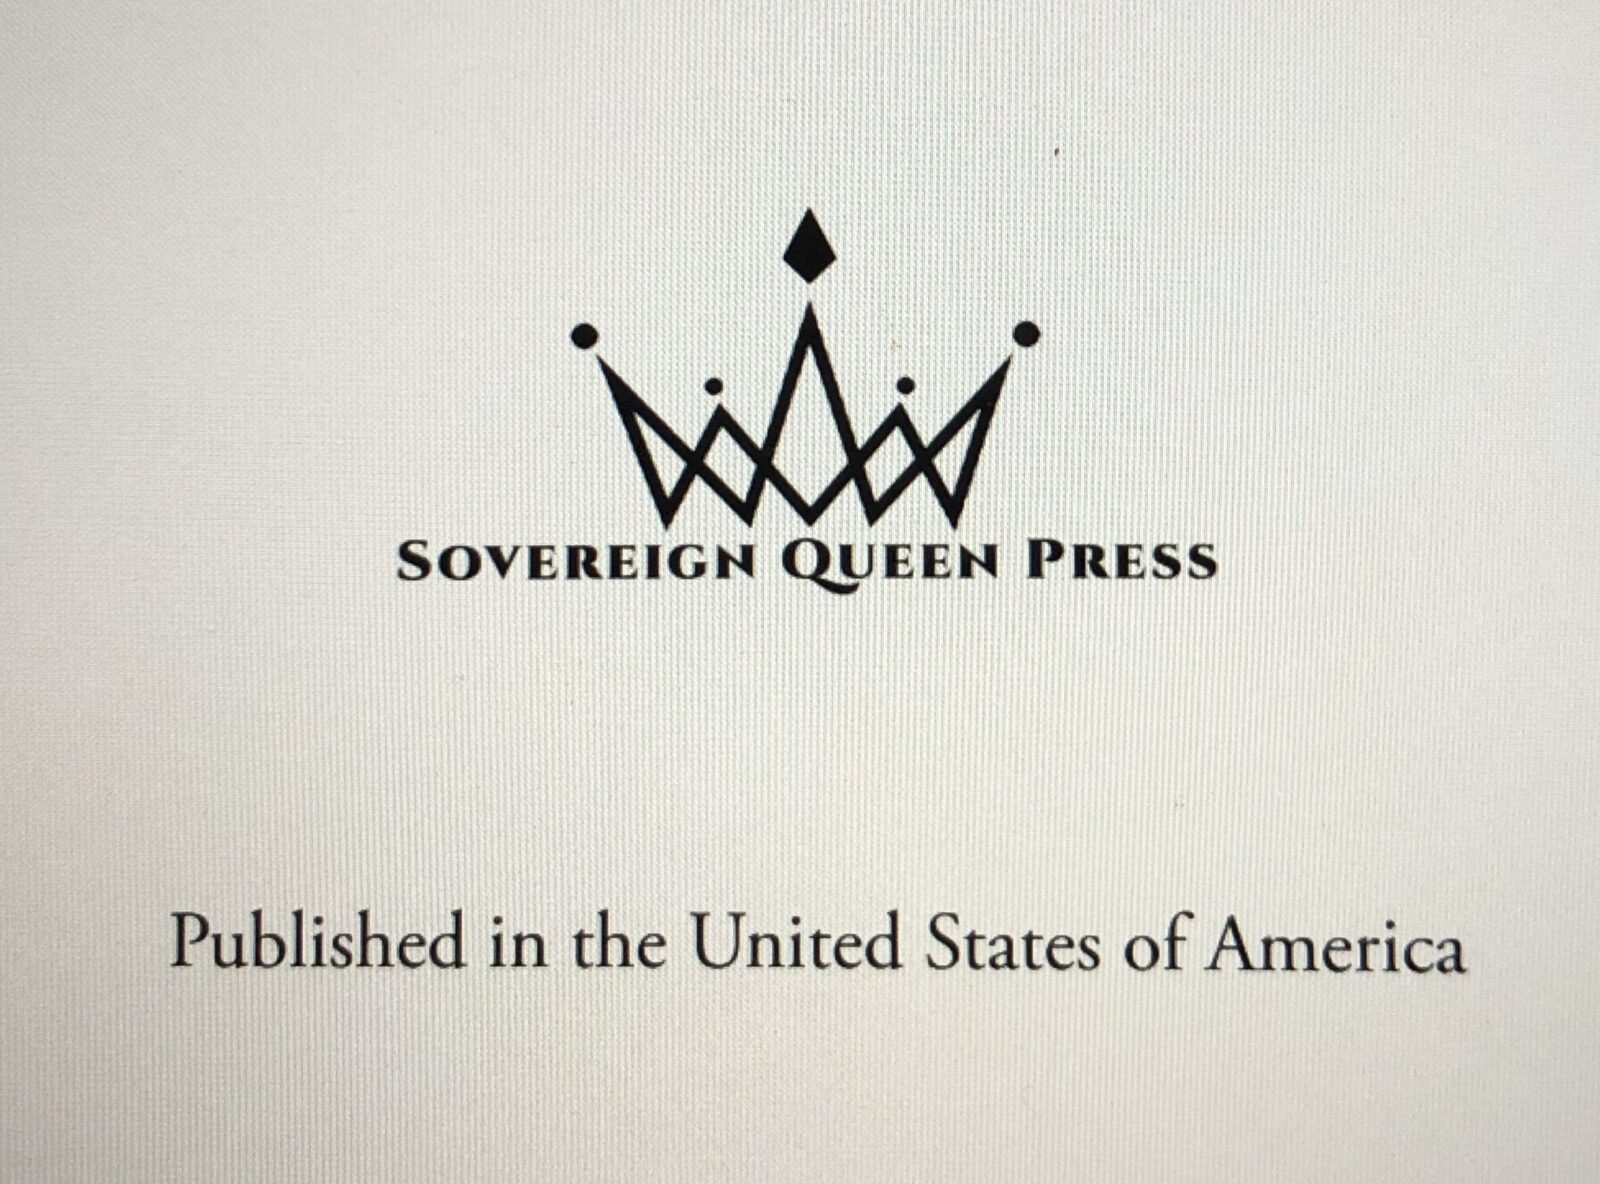 Sovereign queen press, a life suspended, publisher